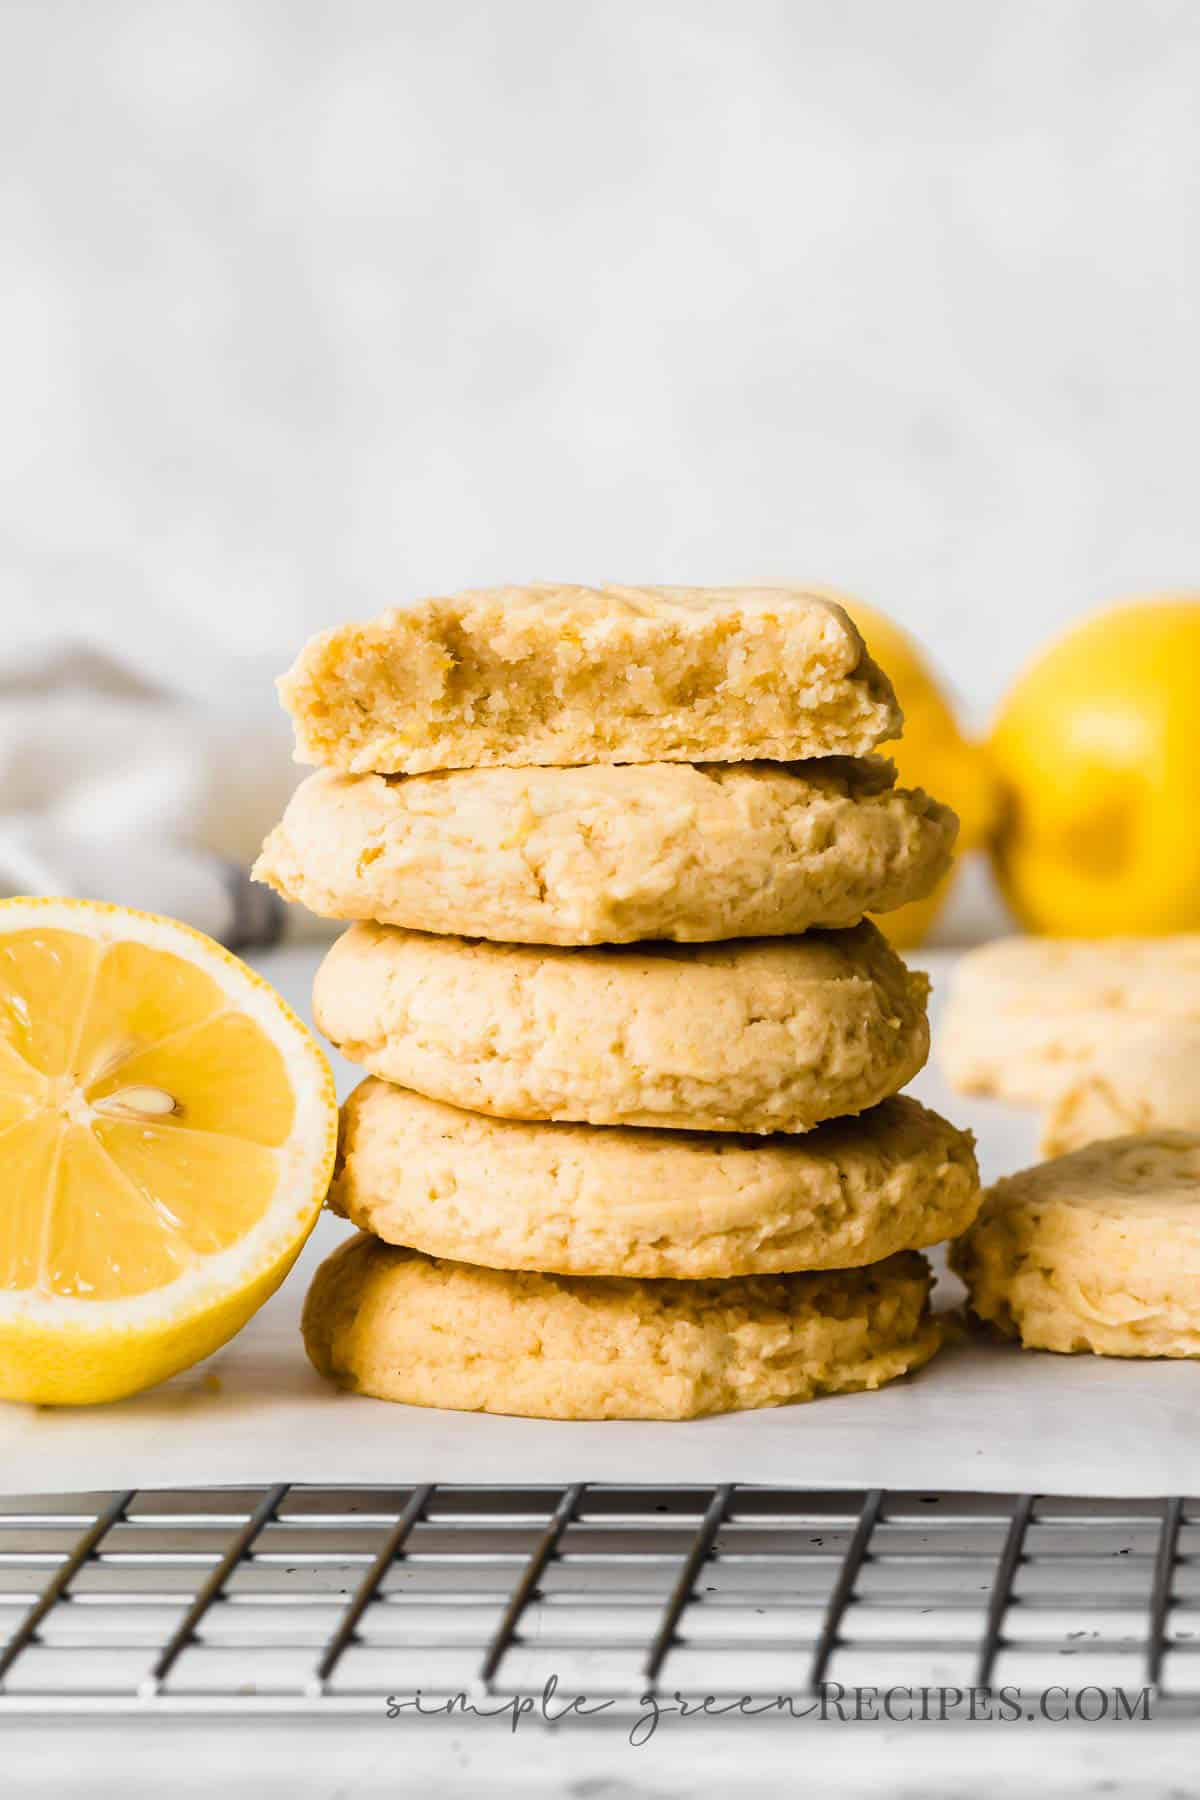 Stack of cookies next to a halved lemon, placed on a parchment paper over a cooling rack.